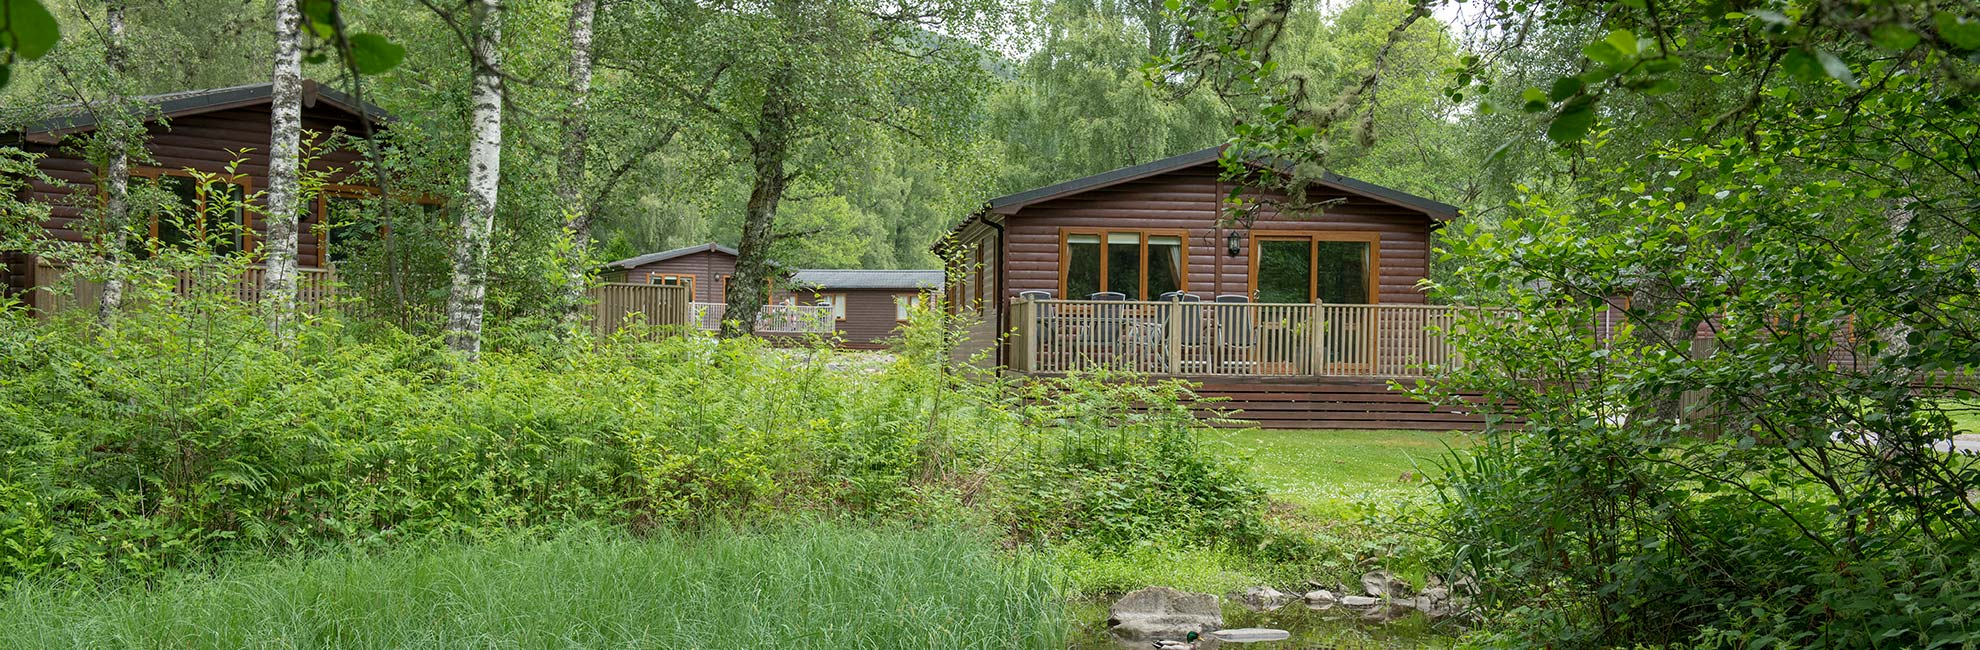 Wooden lodges with verandas at Tummel Valley Holiday Park